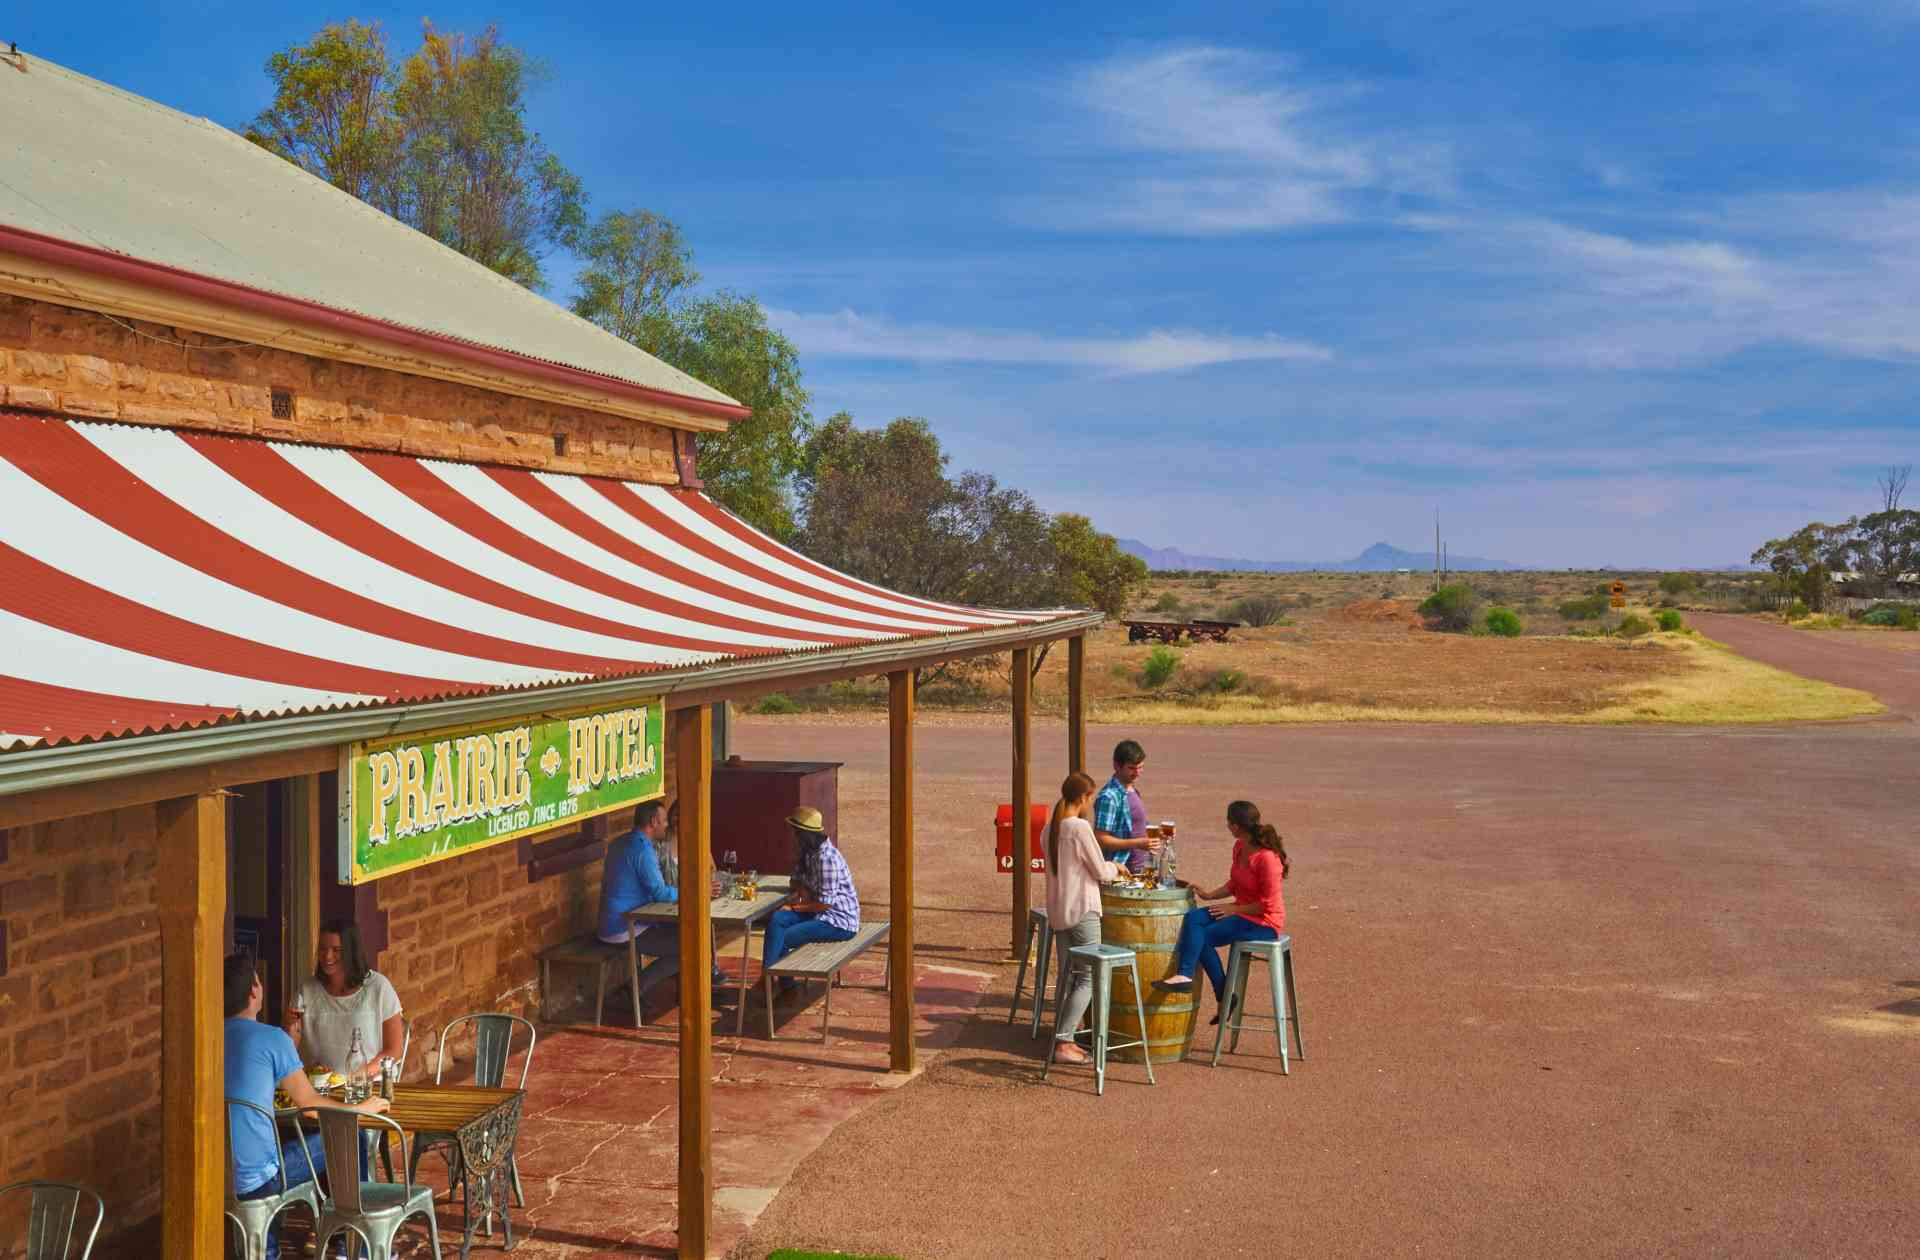 Prairie Hotel, Flinders Ranges by Adam Bruzzone, South Australian Tourism Commission